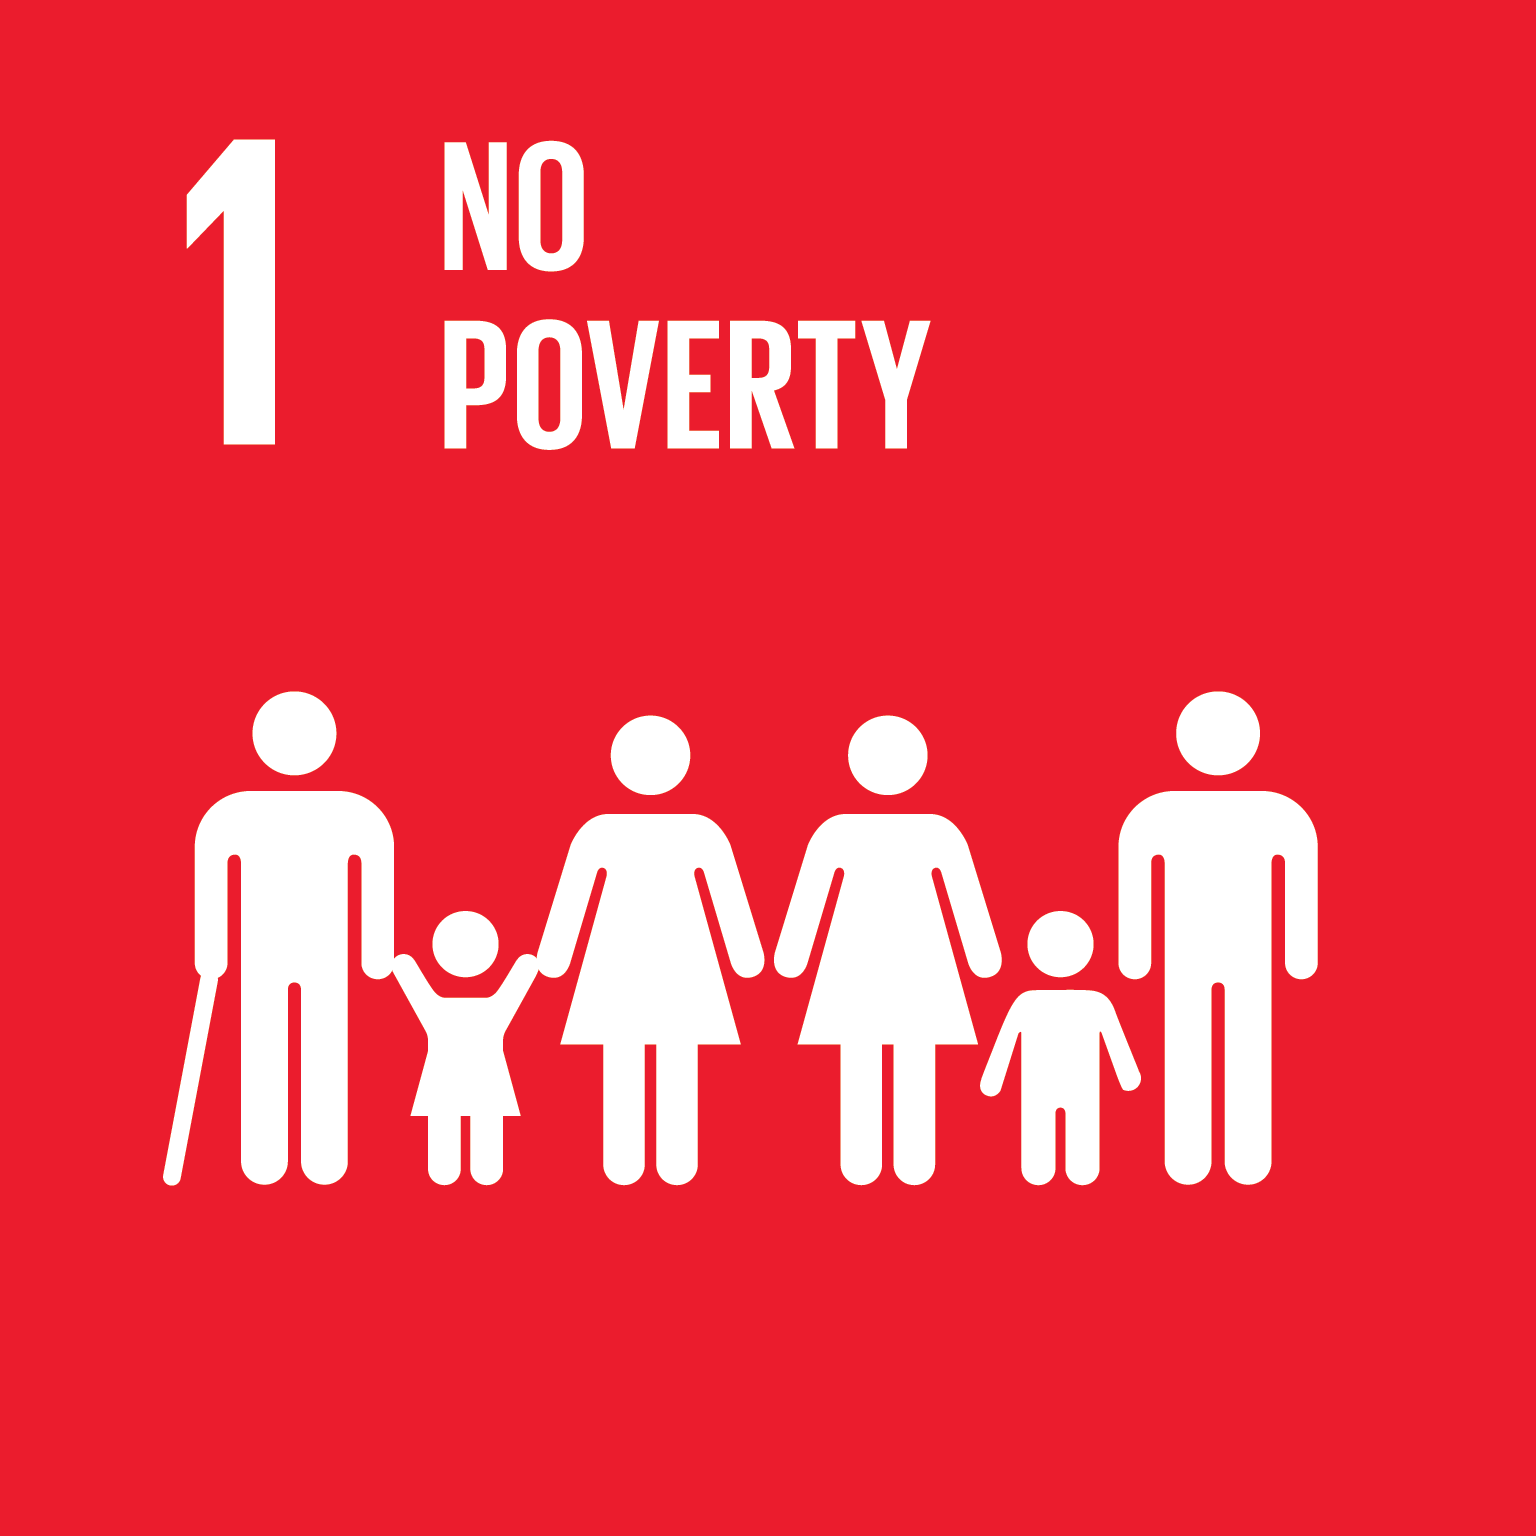 SDG Goal 1 'No poverty' © UN